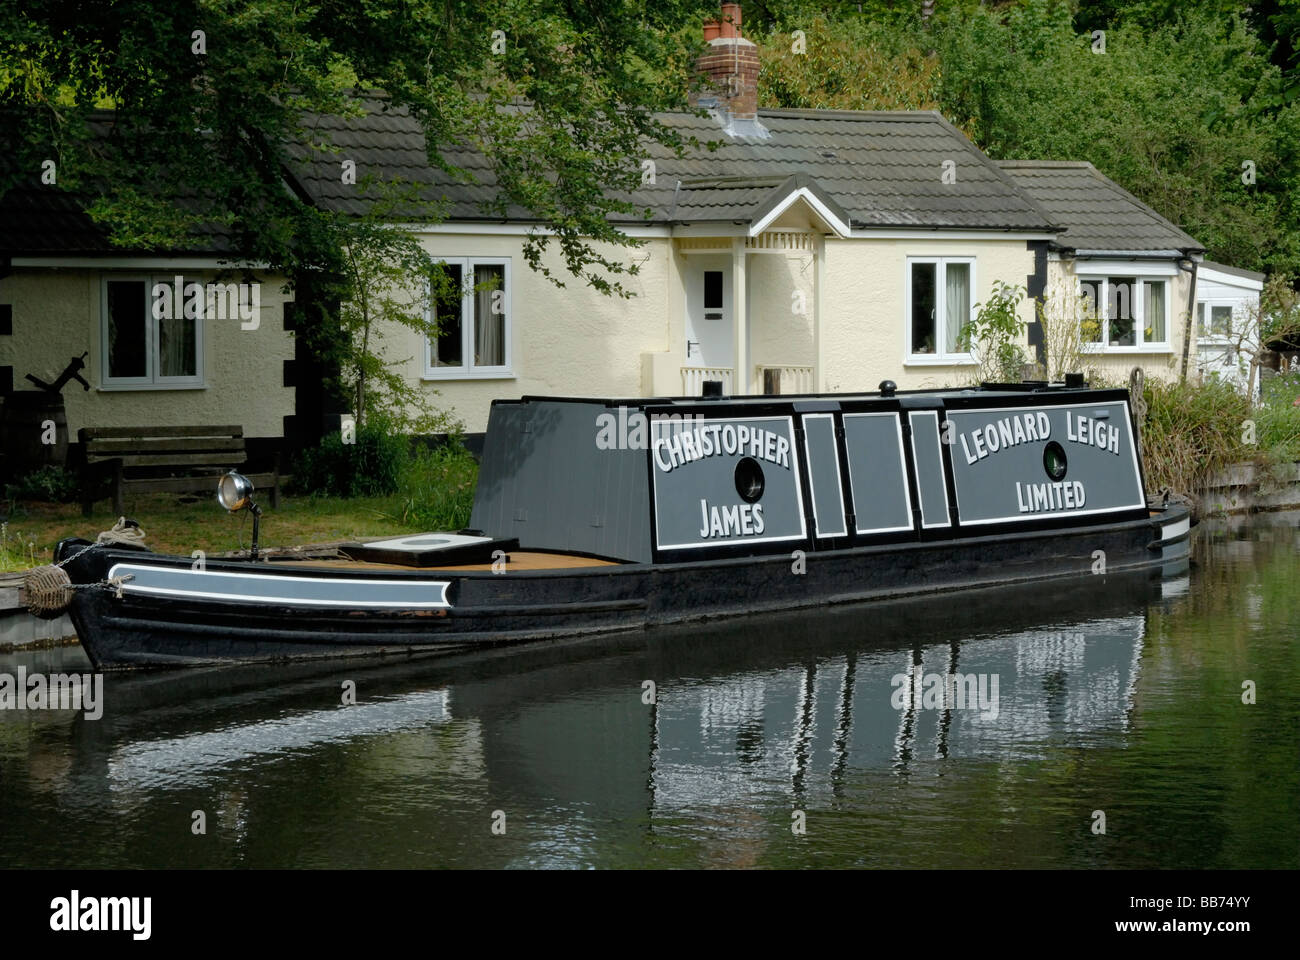 Narrow beam motor tug moored before a lock cottage, Deepcut, Basingstoke Canal, Surrey, England - Stock Image